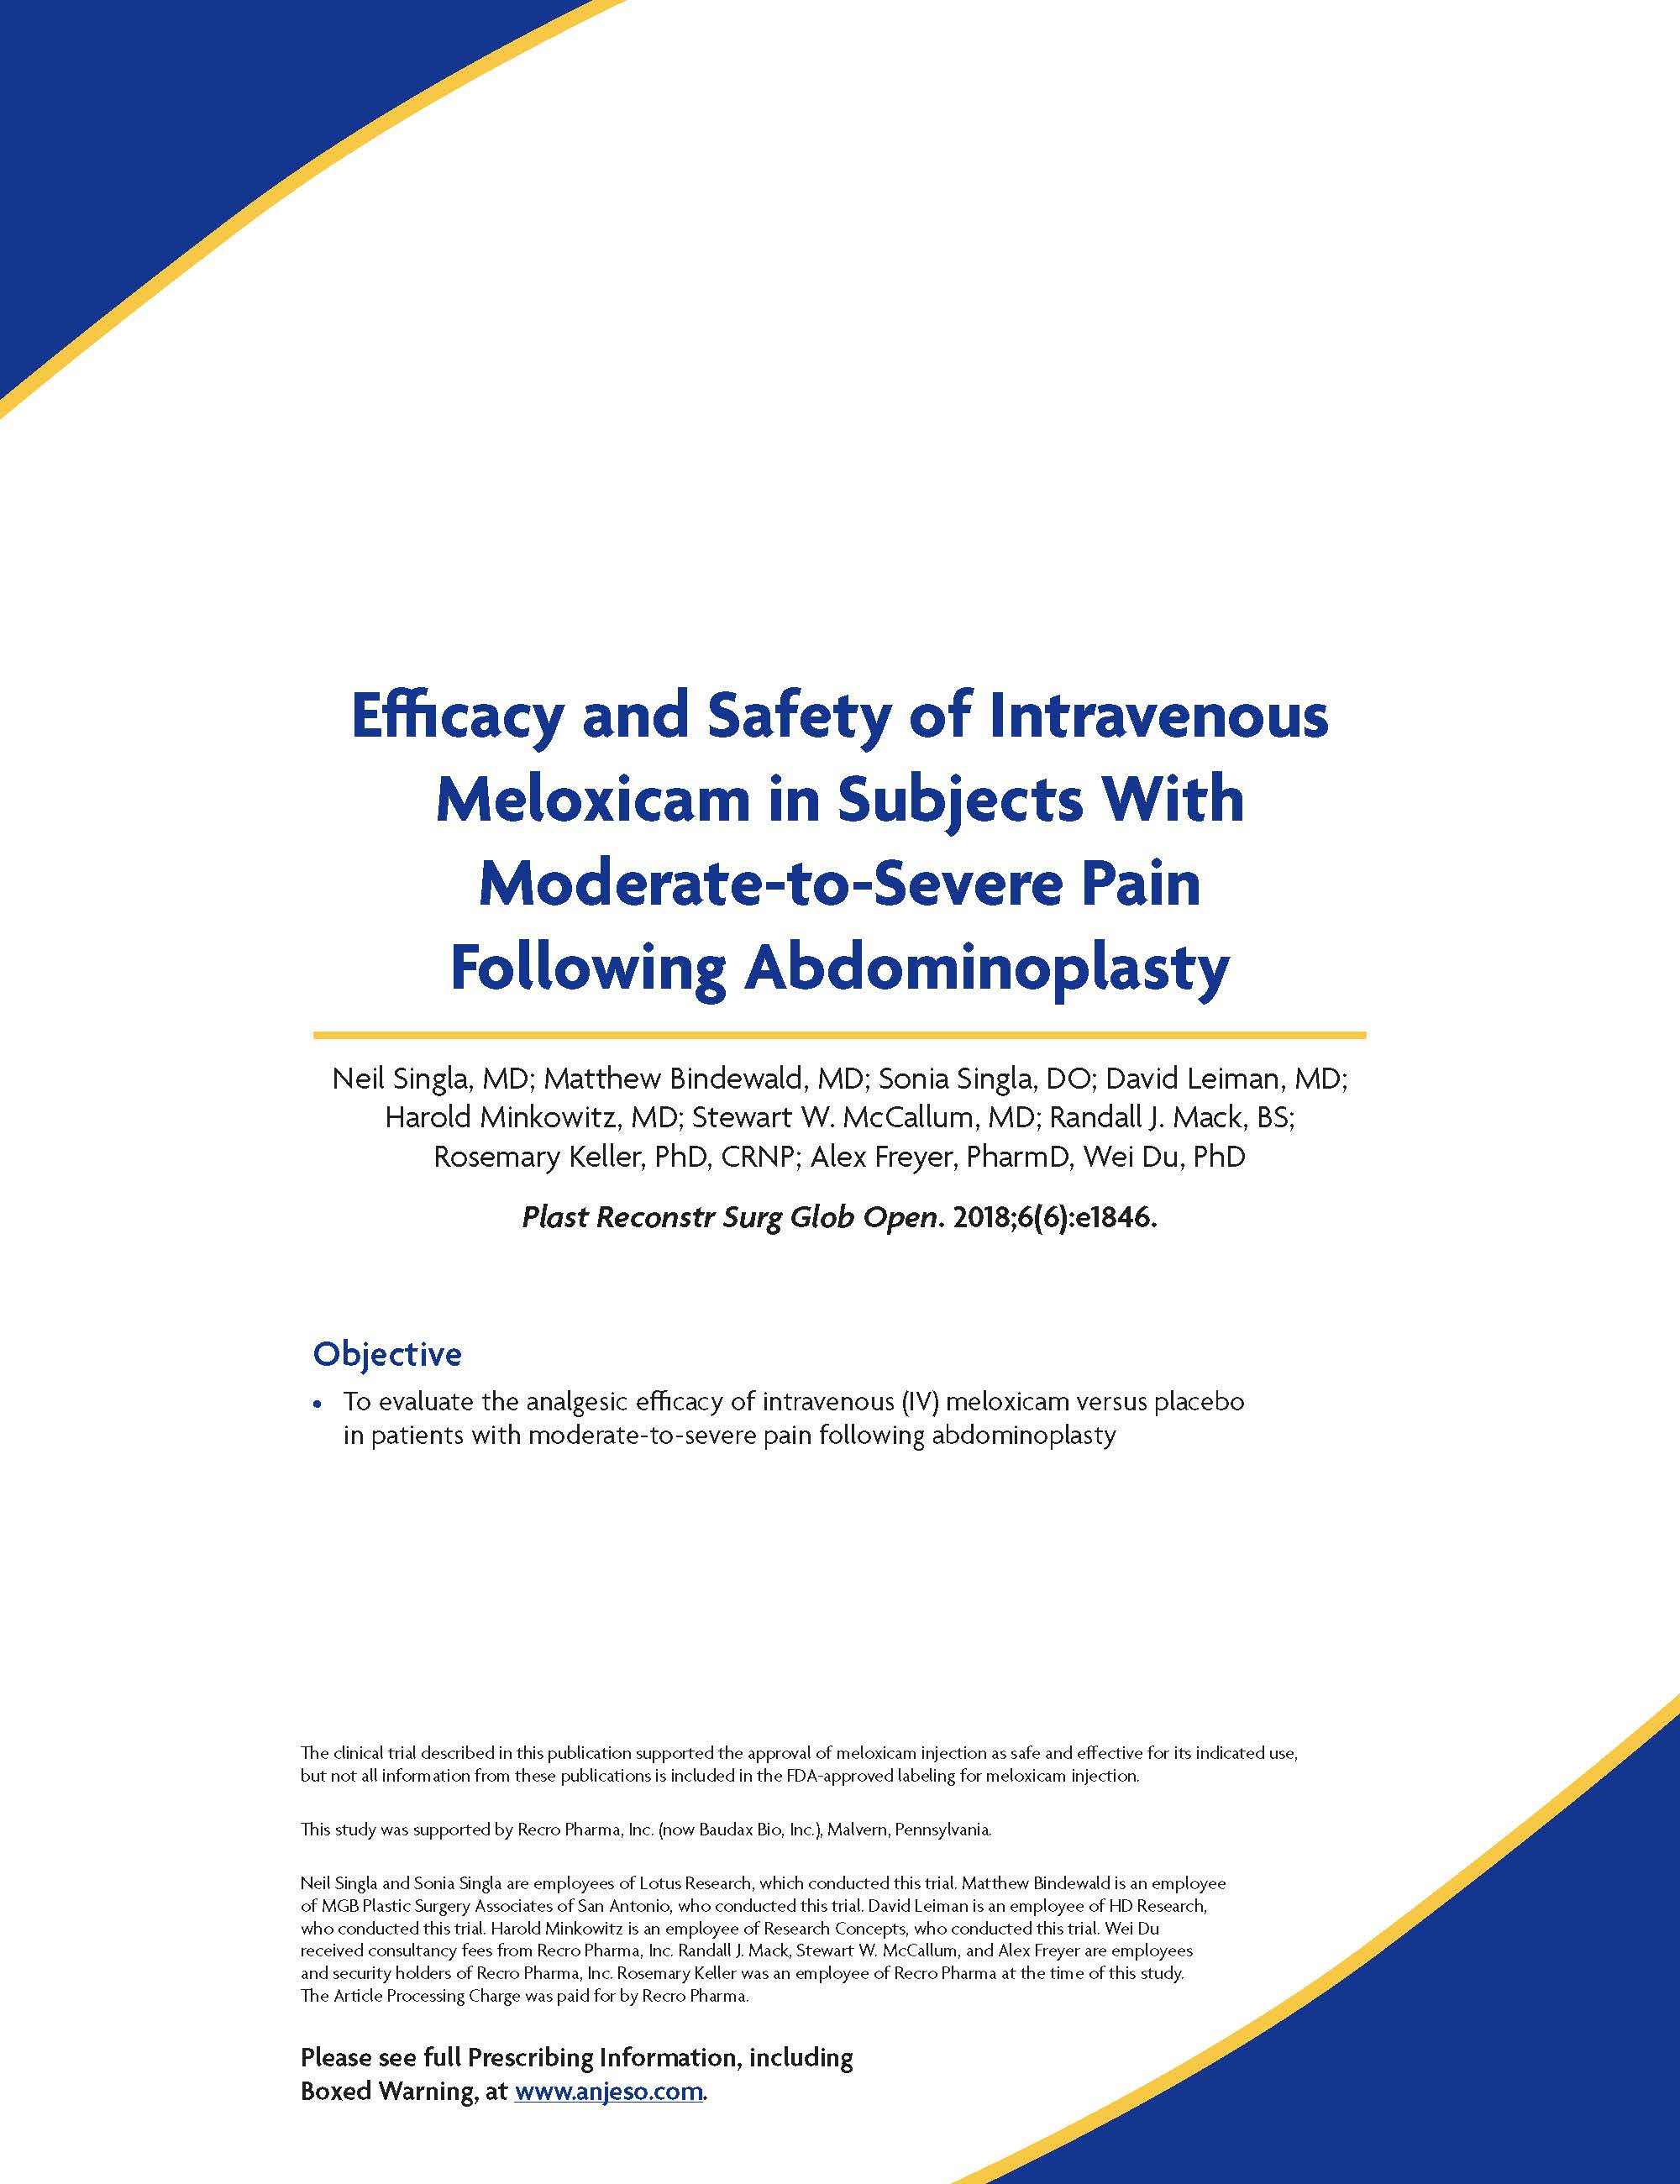 Efficacy and Safety of Intravenous Meloxicam in Subjects With Moderate-to-Severe Pain Following Abdominoplasty thumbnail